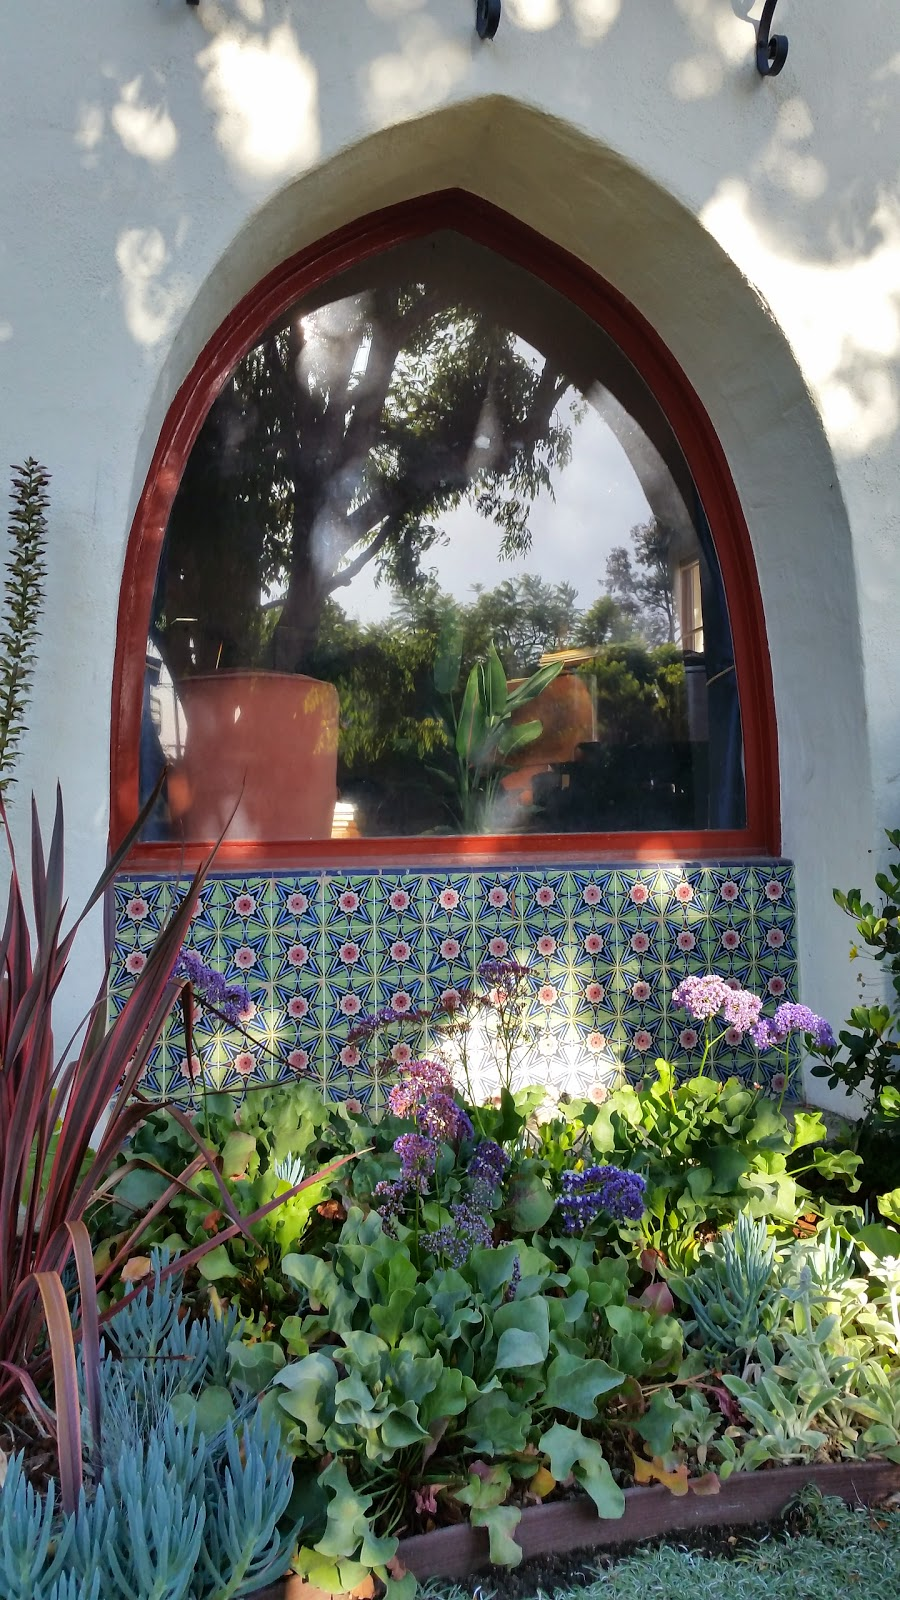 Avente Tile Talk: Discover Design with Historic Spanish Tile Installations in Los Angeles